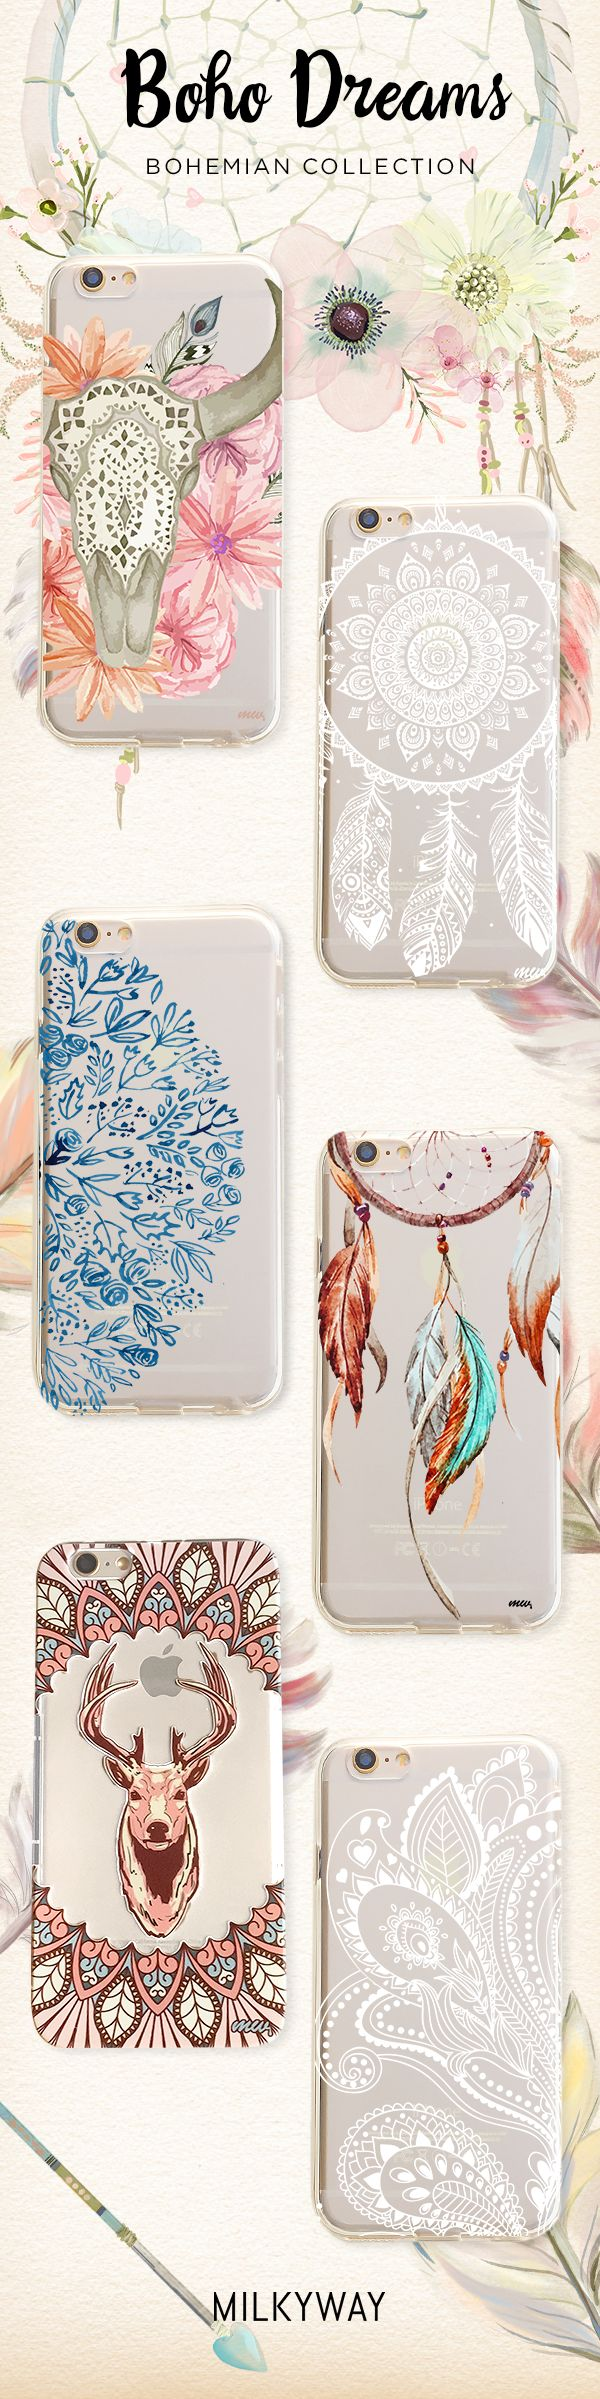 iPhone! Bohemian Dreams Collection of Phone Cases for iPhone Samsung. Shop Now at Milkyway Cases Cool iPhone stuff